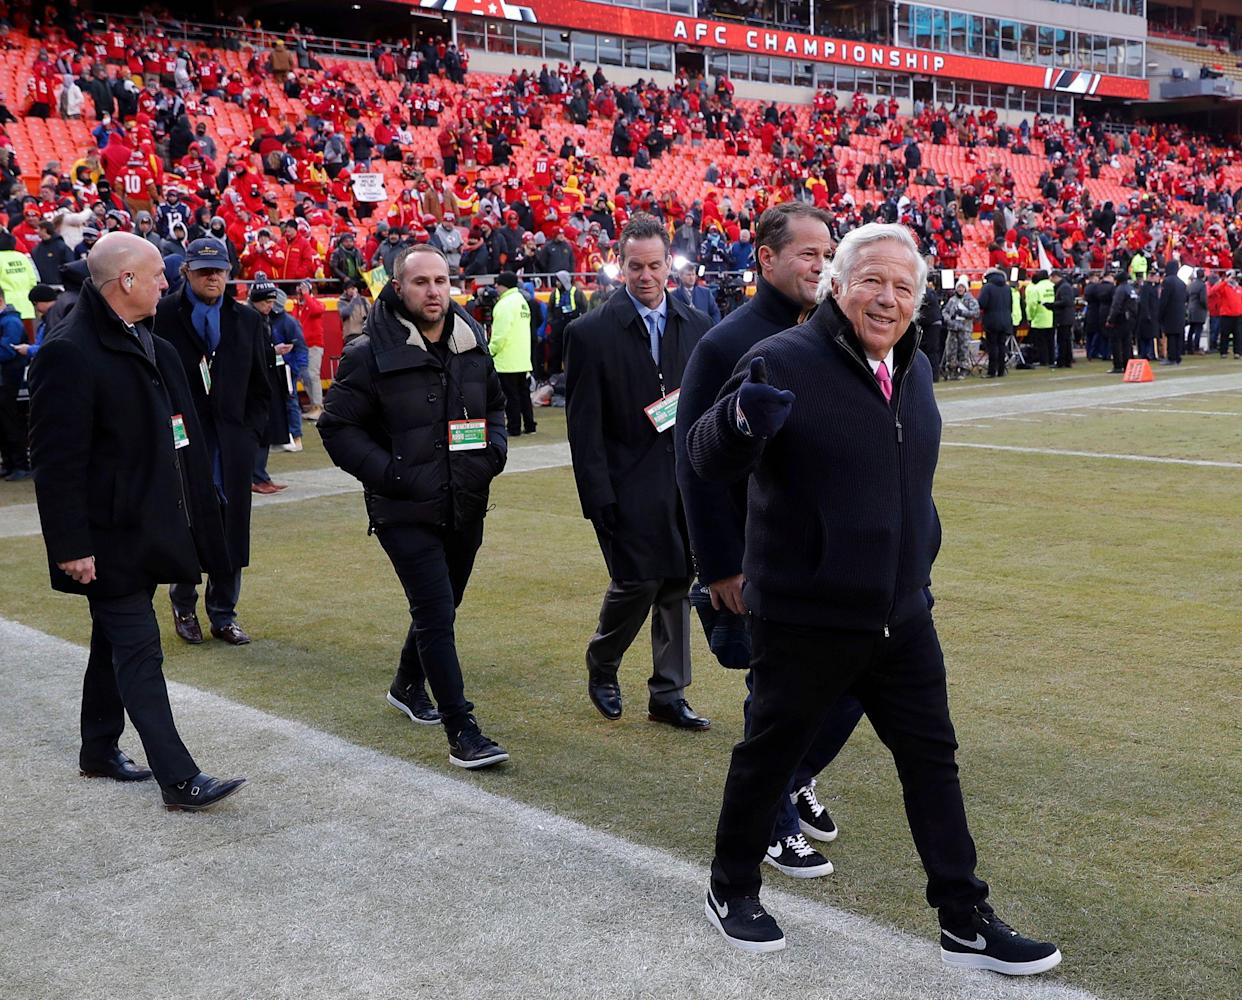 The Wall Street Journal is reporting that prosecutors in Florida have offered New England Patriots owner Robert Kraft, right, a deal to avoid prosecution in his solicitation of prostitution case. (AP)